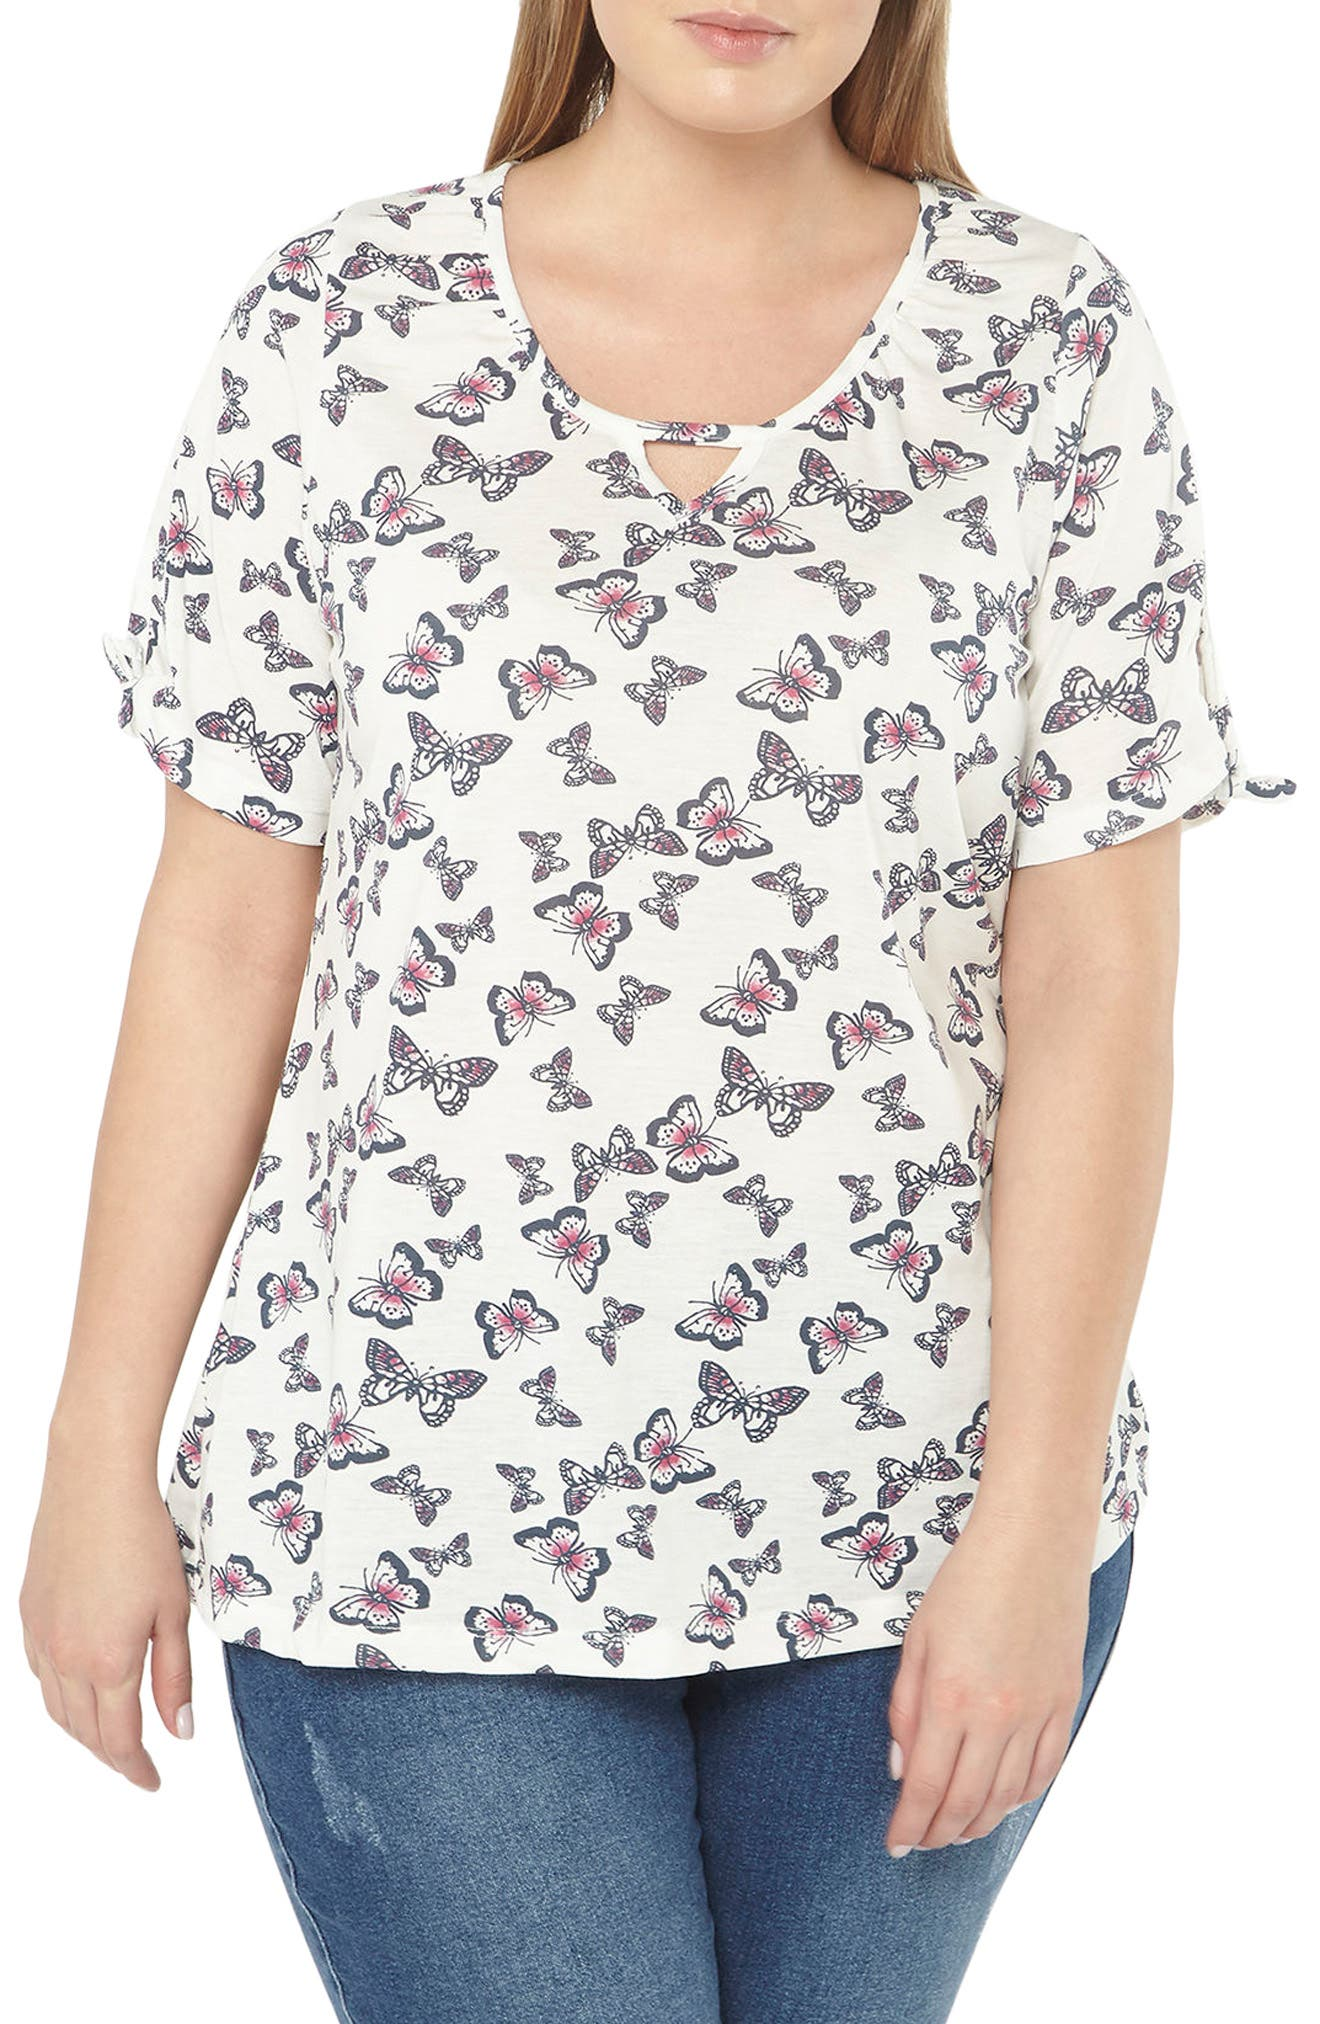 Evans Butterfly Print Top (Plus Size)